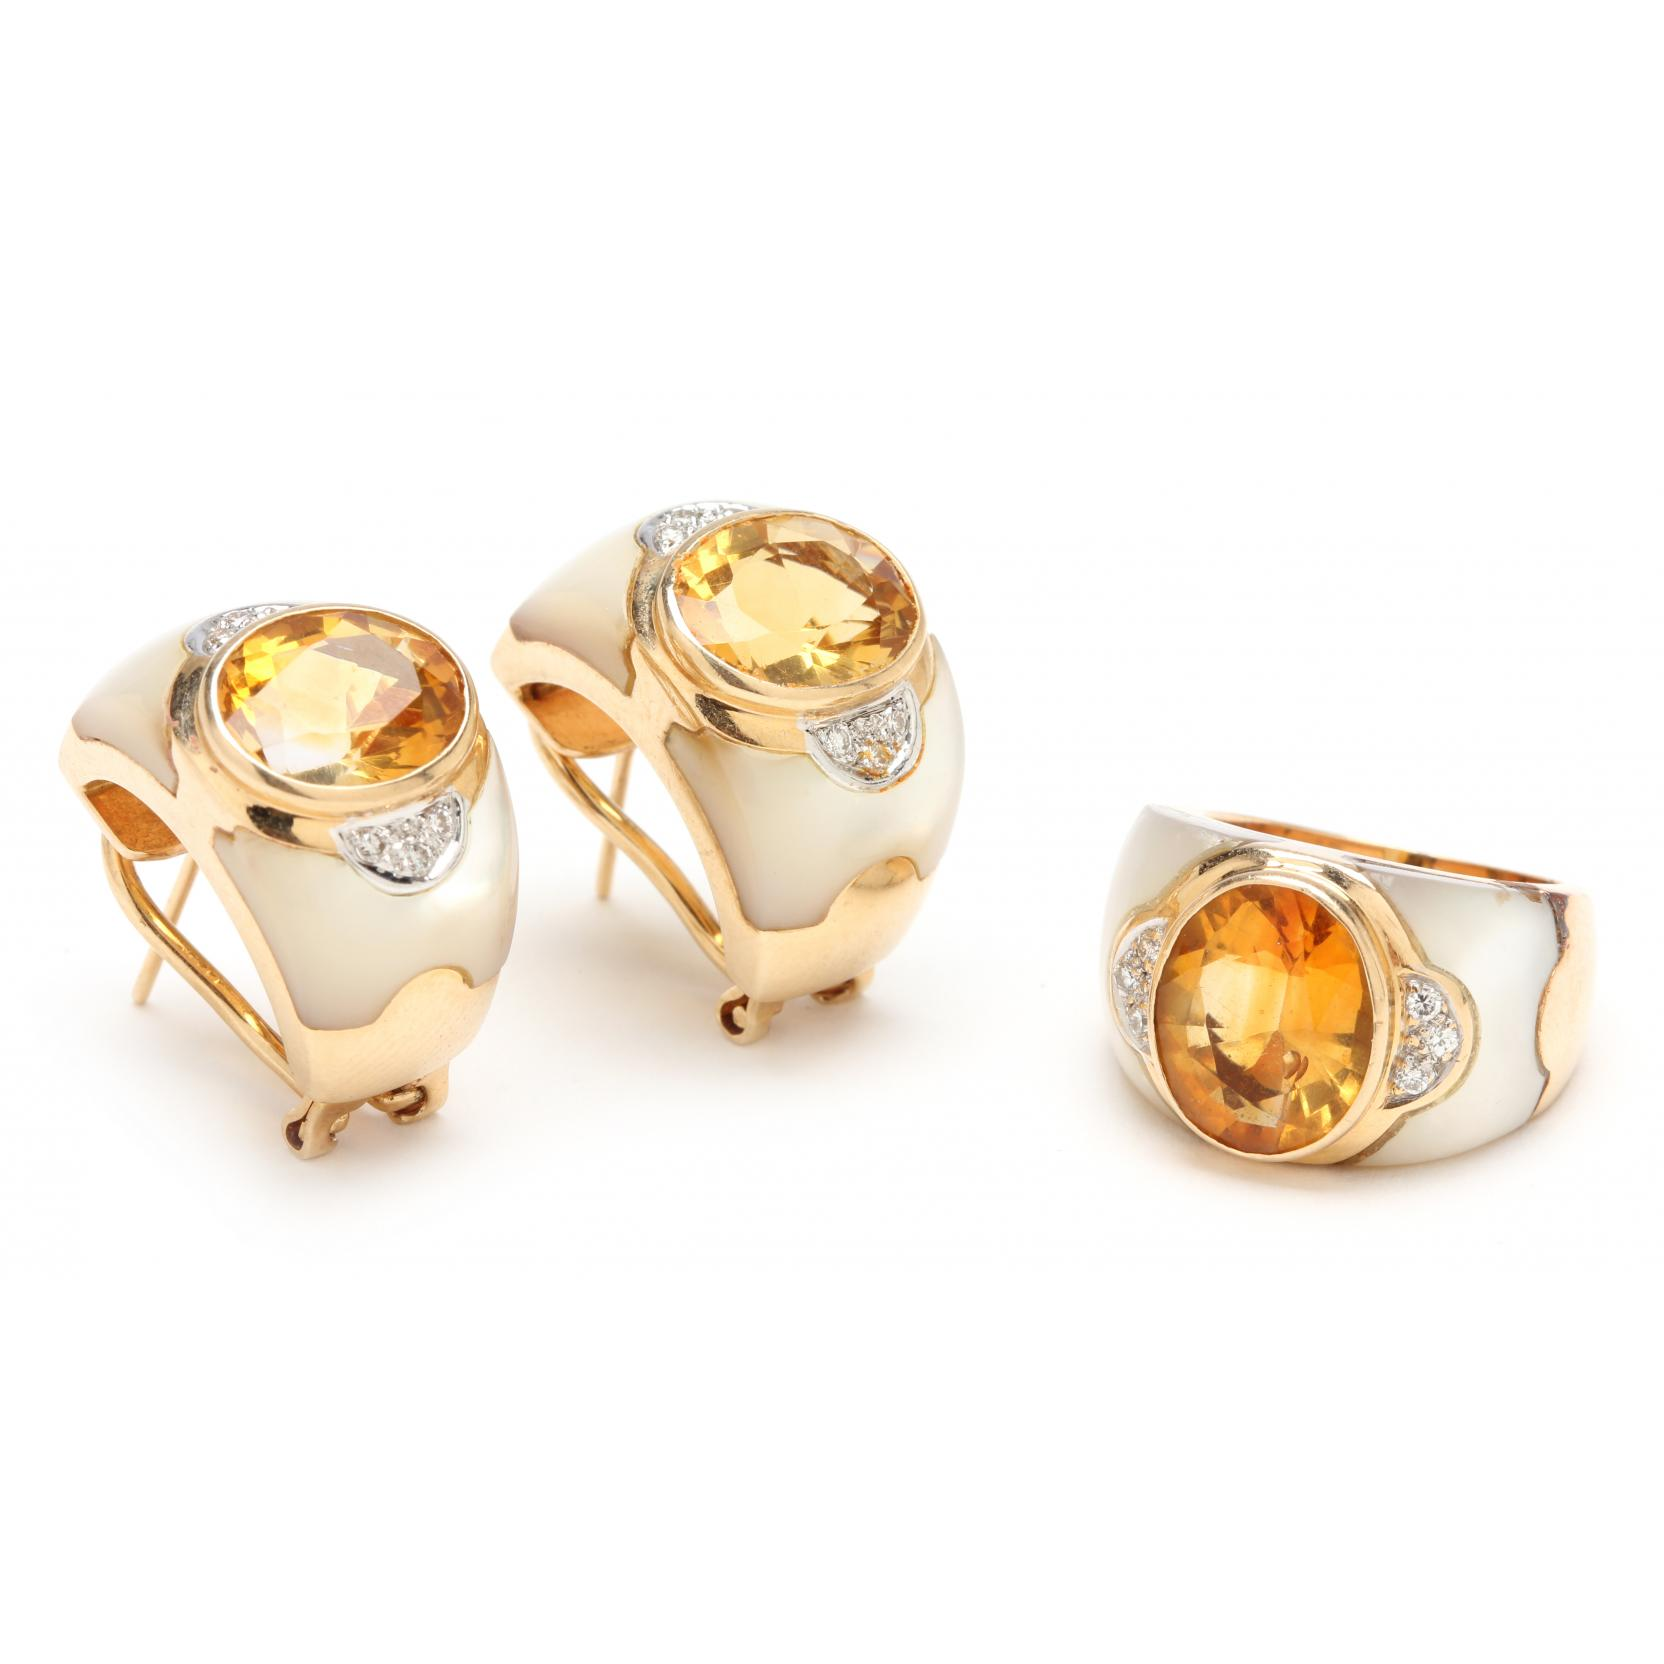 citrine-diamond-and-mother-of-pearl-ring-and-ear-clips